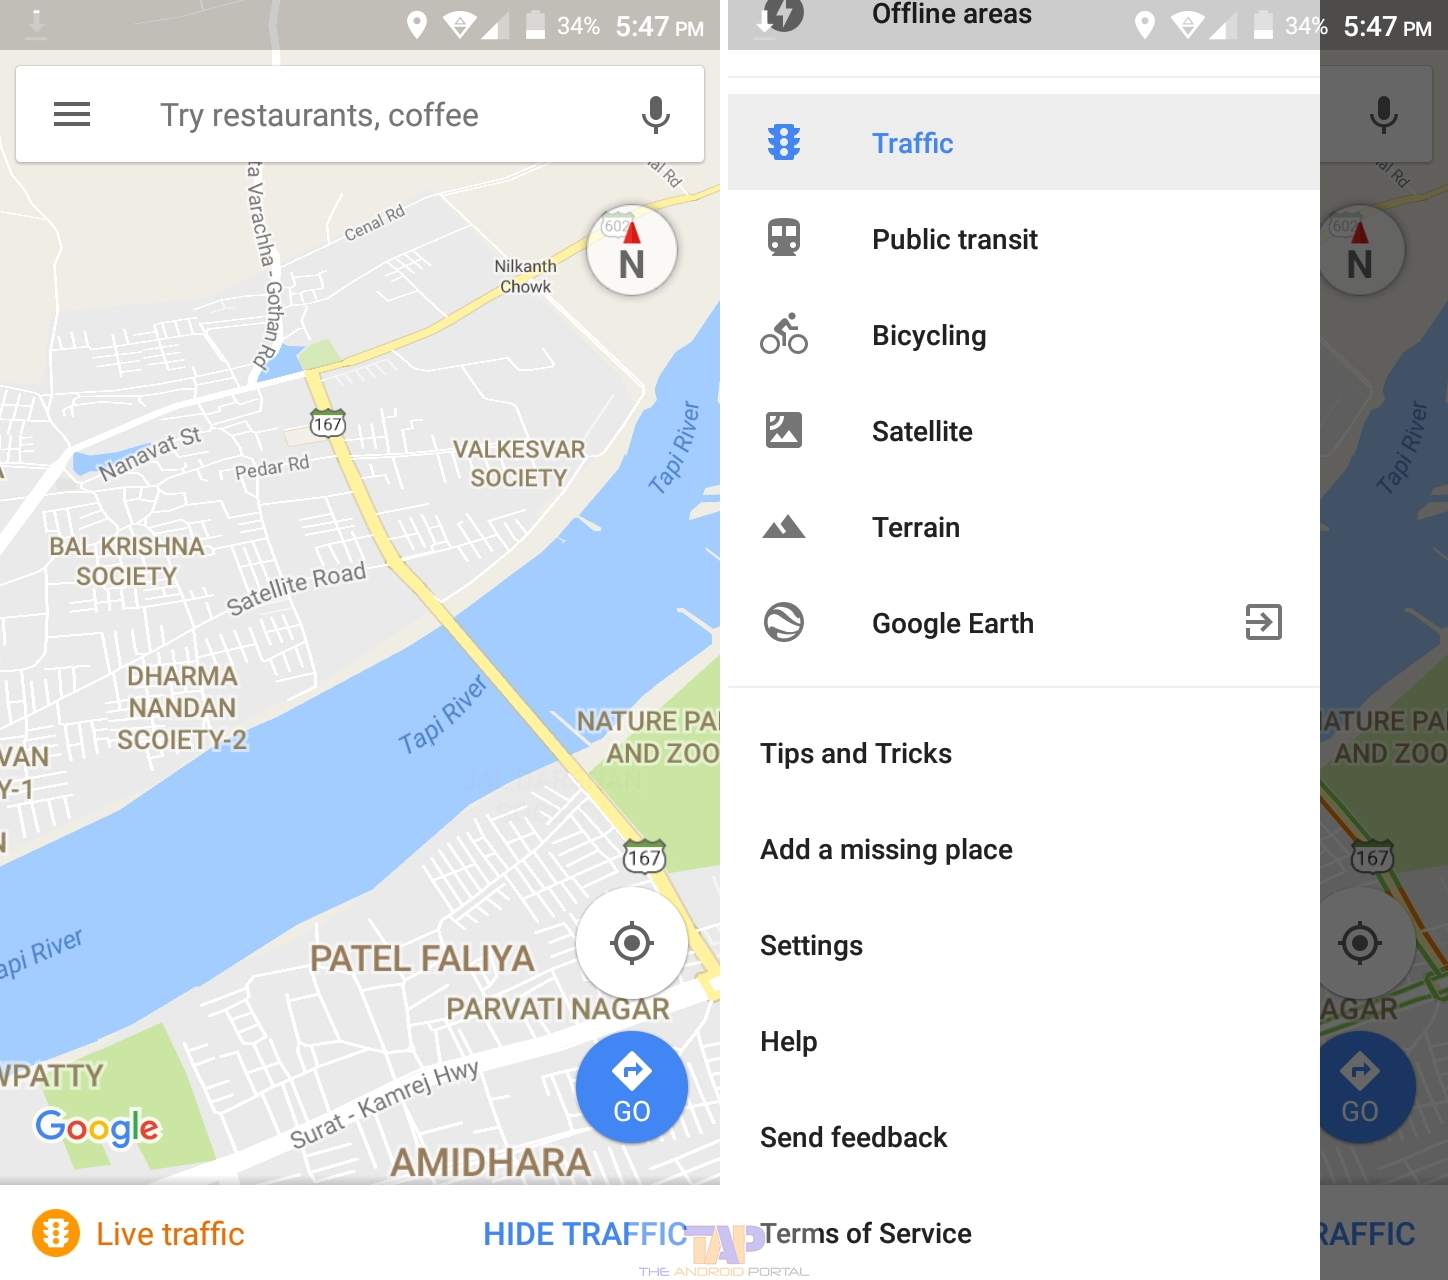 How To Clear Google Maps History On Android Phones Delete Google Maps on